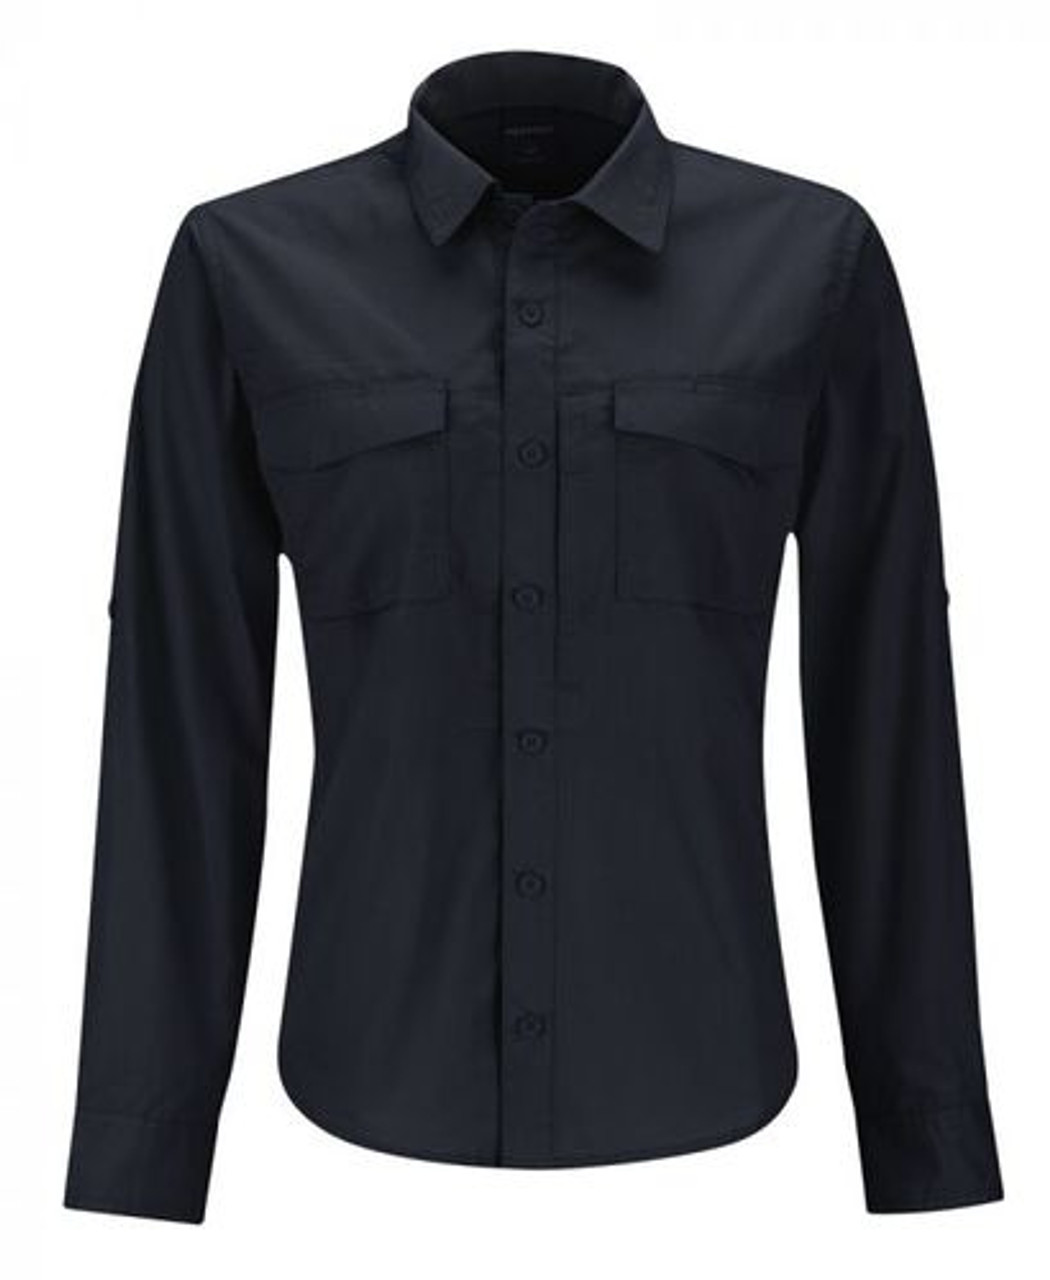 Propper® F5335 Women's Rev-Tac, Tactical Casual or Uniform Button-Down Long Sleeve Shirt, Polyester/Cotton, Badge Tab